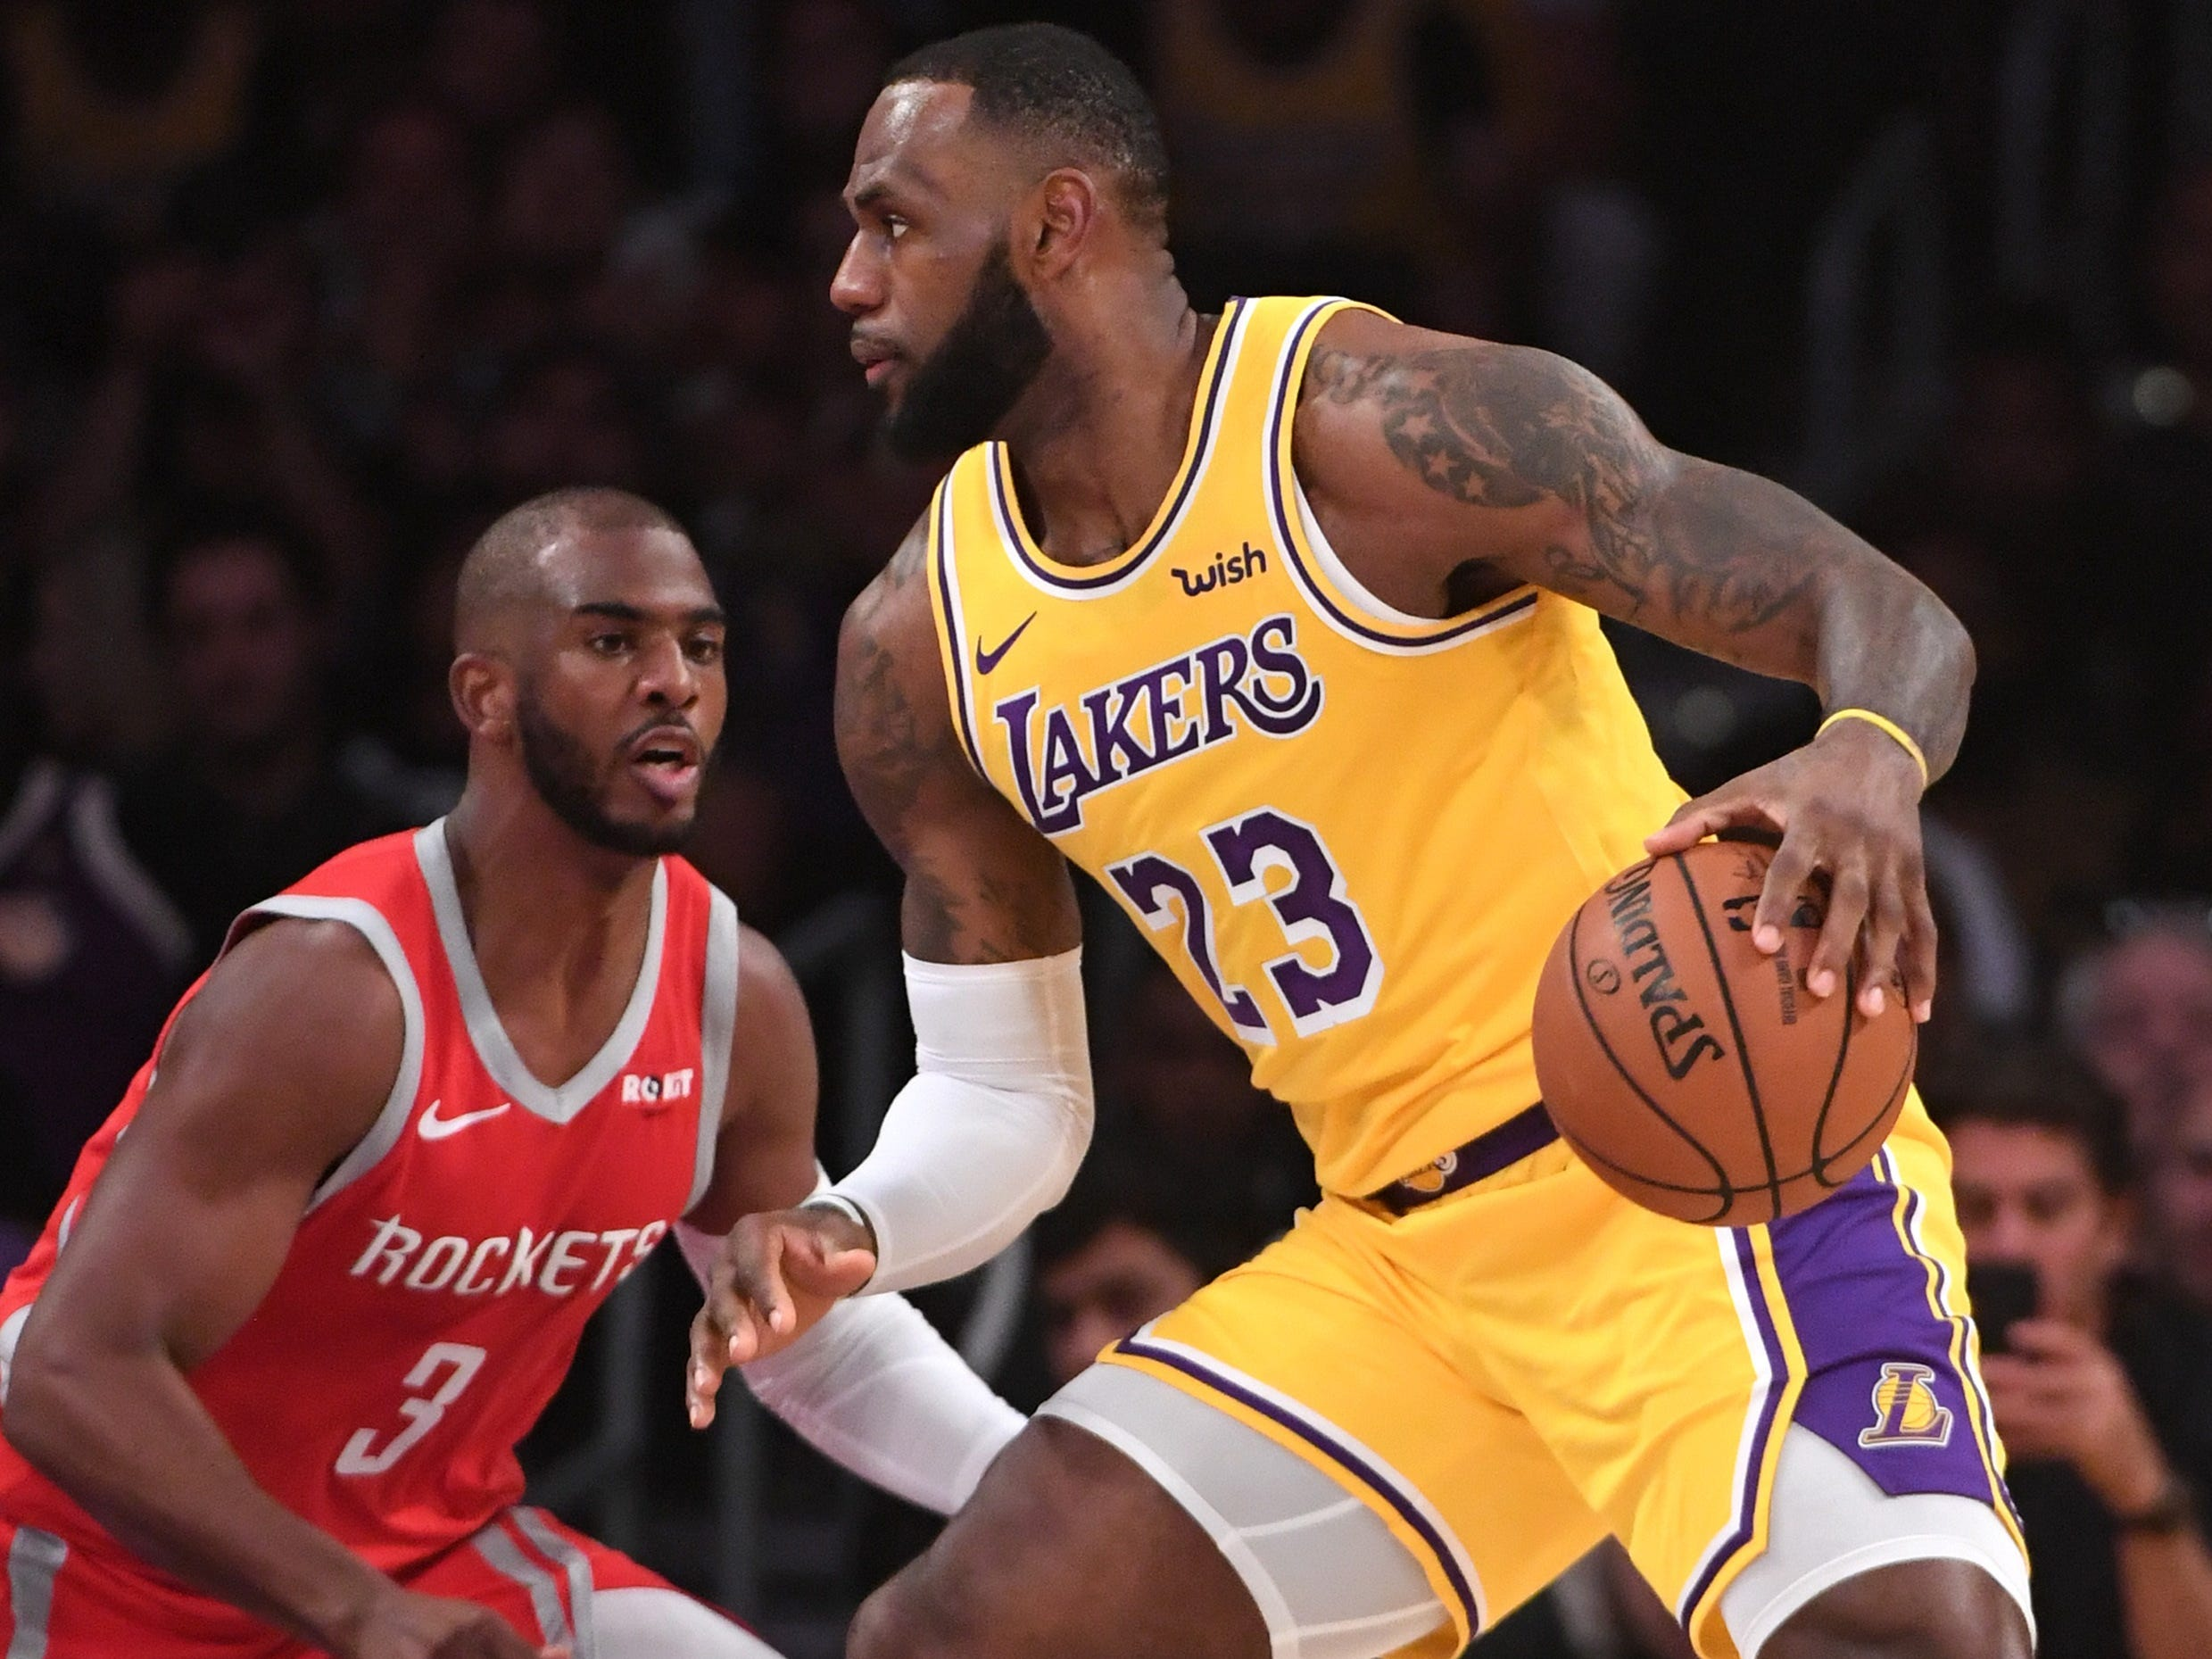 Oct. 20: Lakers forward LeBron James (23) looks for room to work against Rockets defender Chris Paul (3).